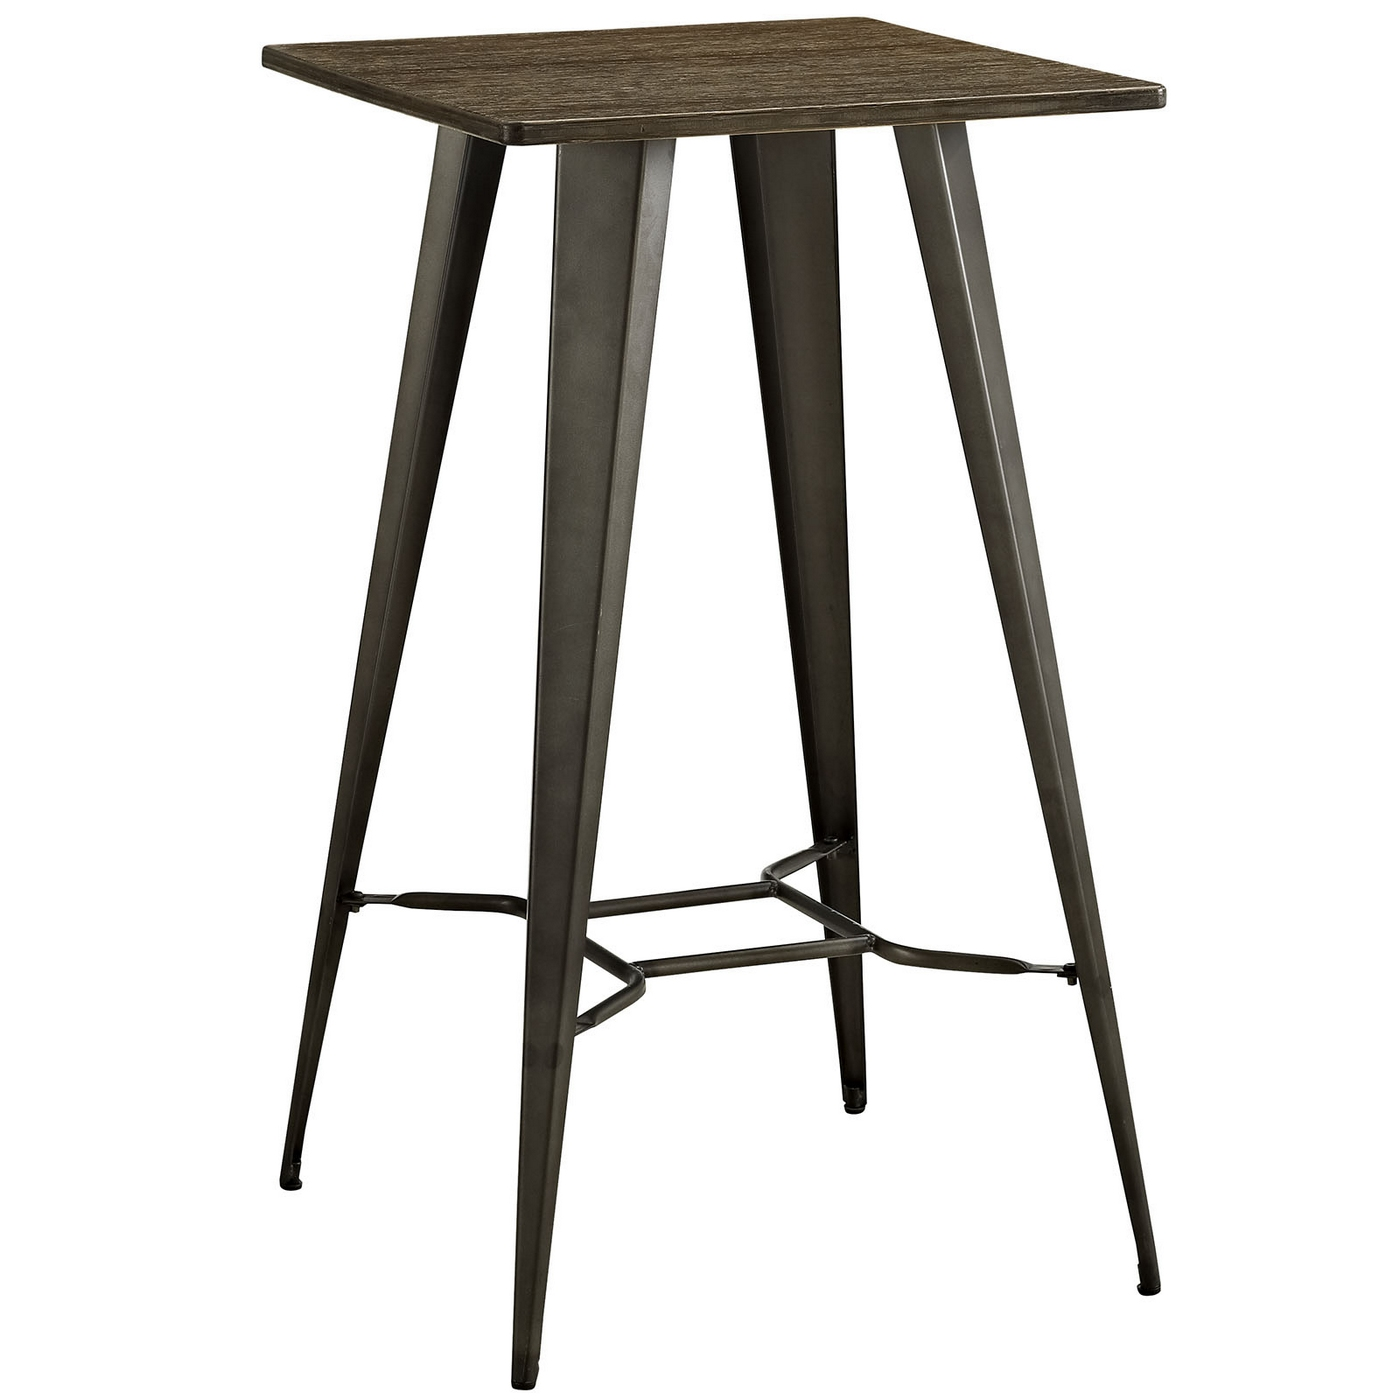 direct industrial bamboo top bar table with steel legs brown. Black Bedroom Furniture Sets. Home Design Ideas